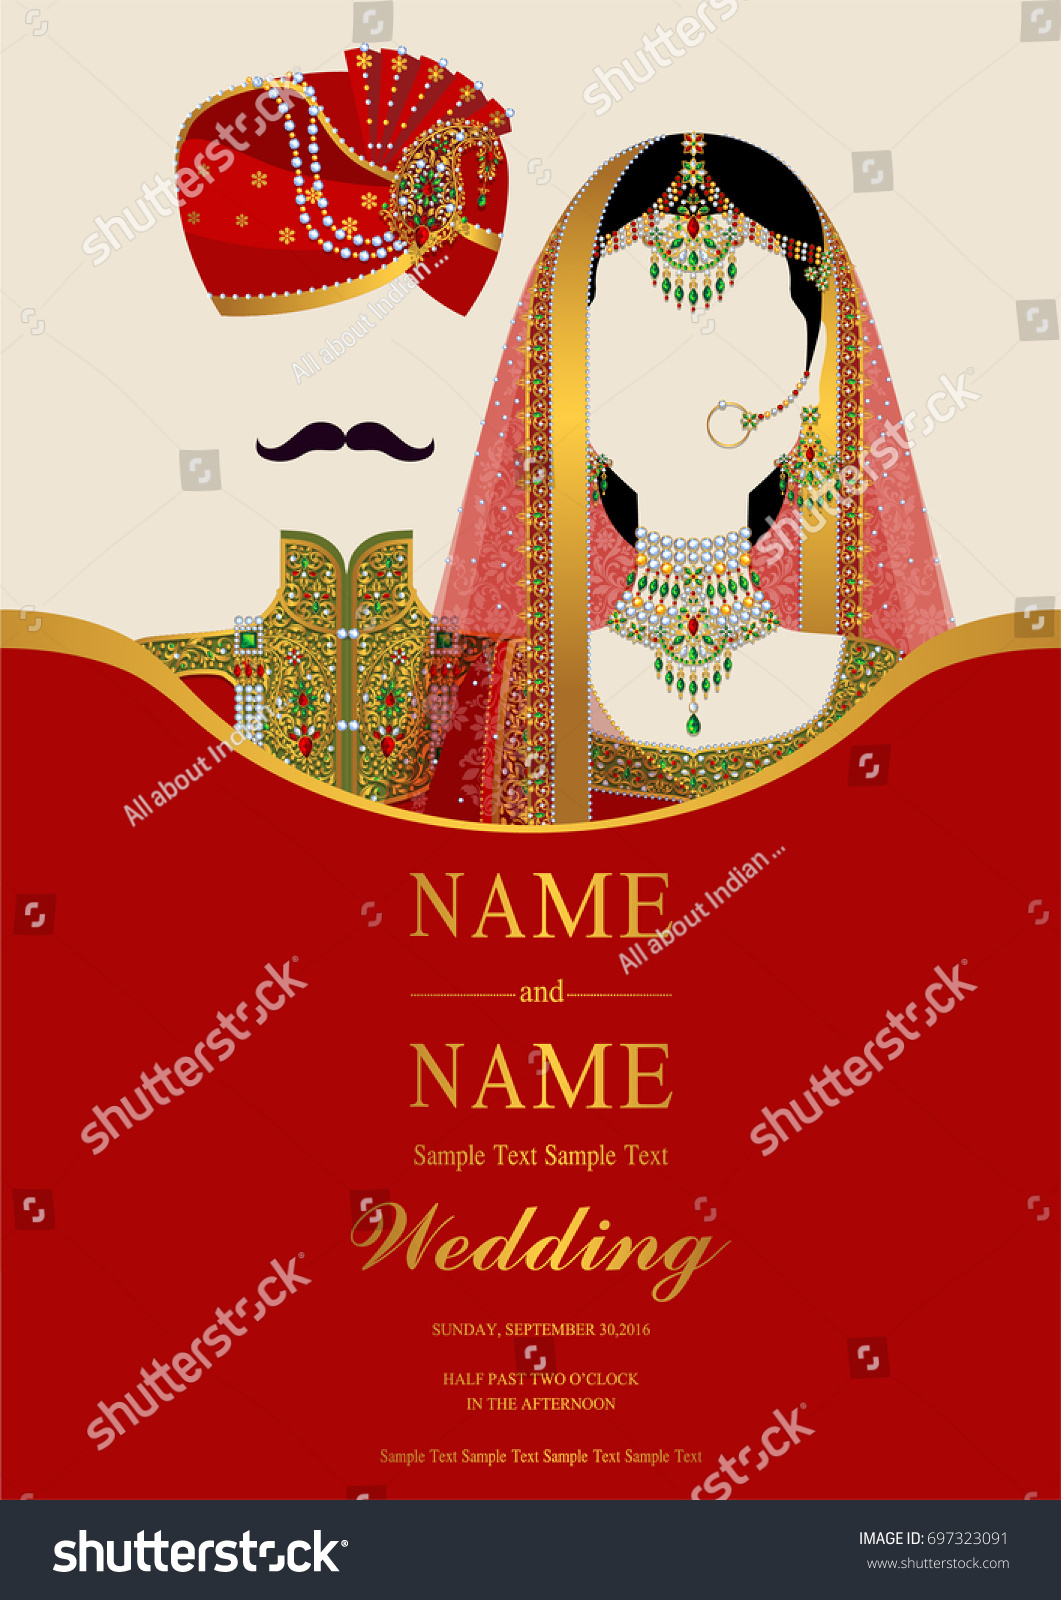 wedding invitation card templates indian man stock vector 697323091 shutterstock. Black Bedroom Furniture Sets. Home Design Ideas